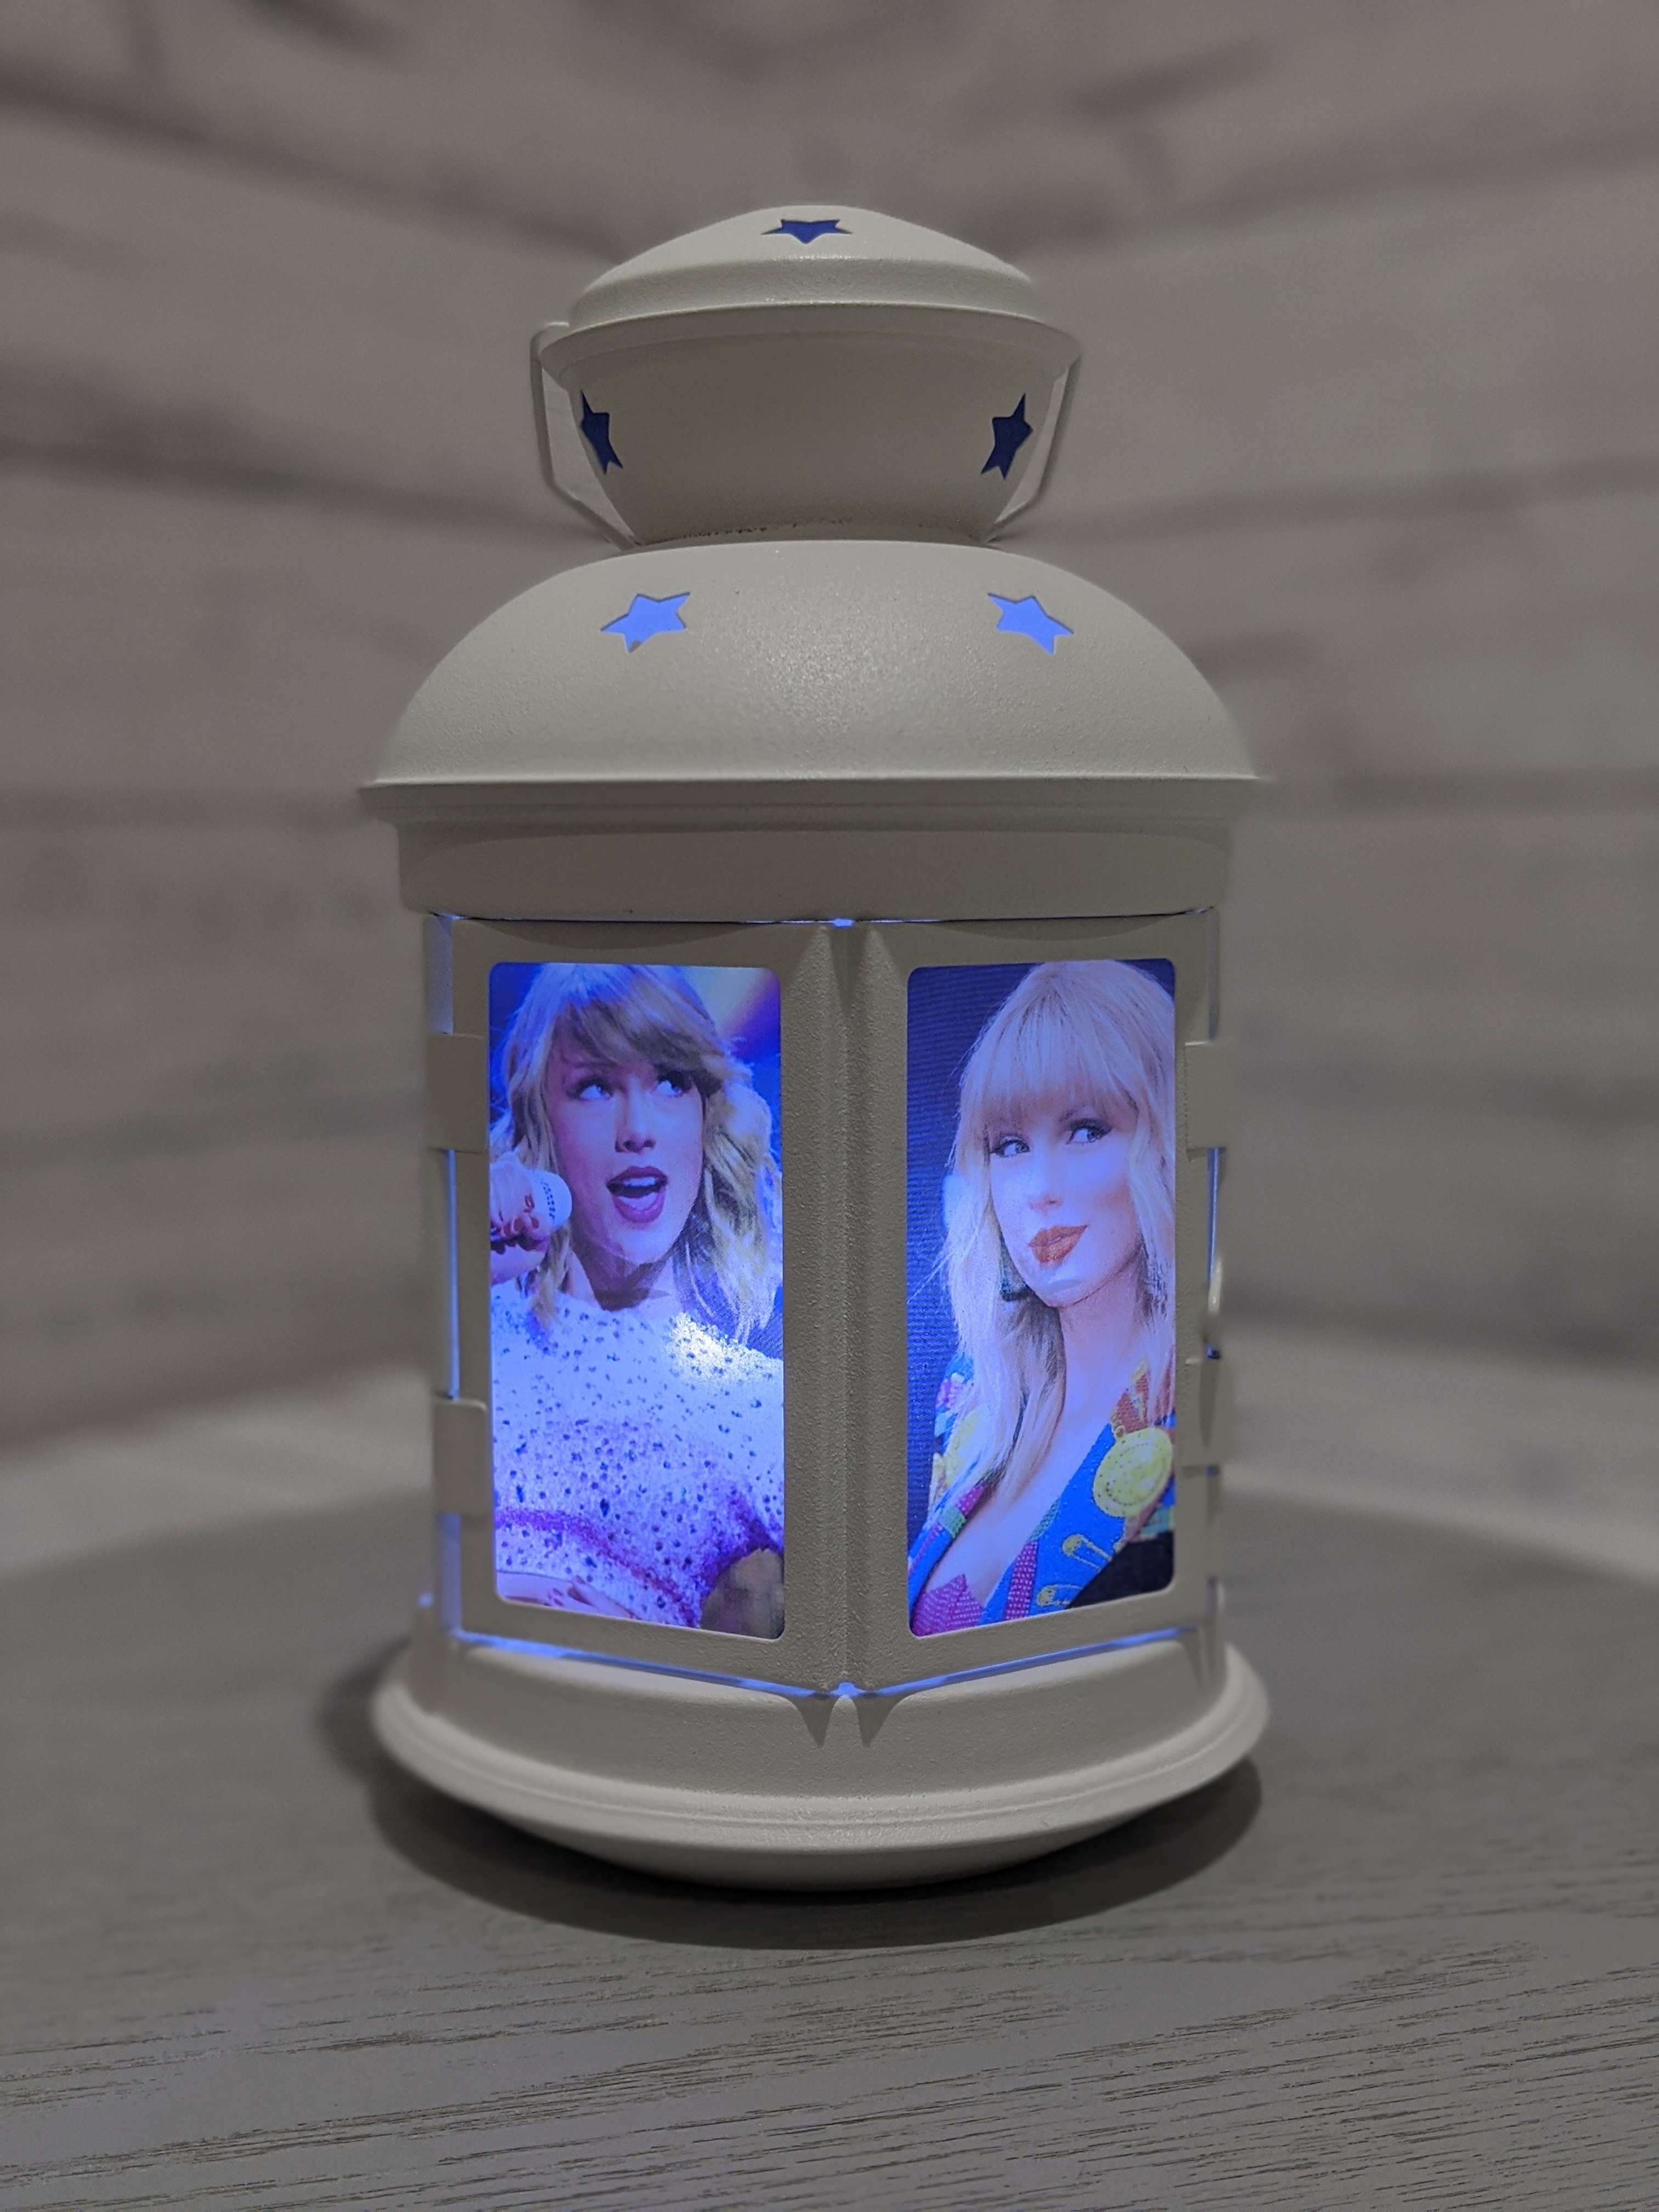 Details about  /Taylor swift inspired Lantern night light lamp home decor gift